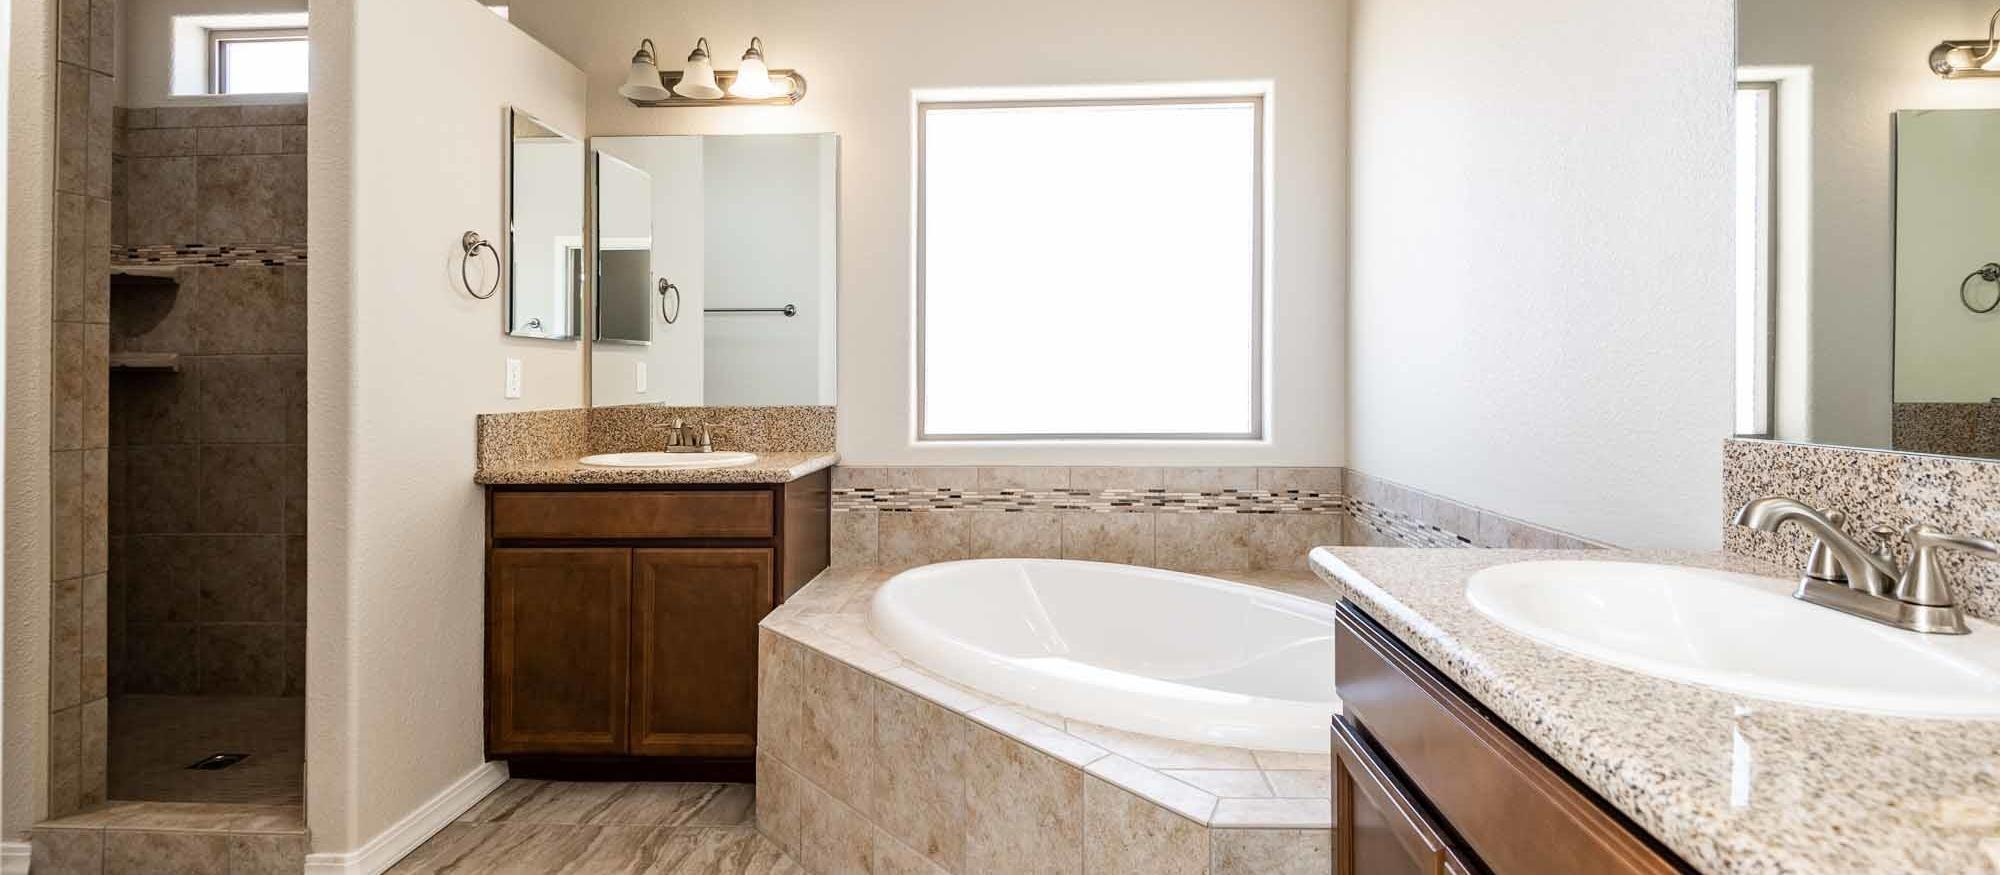 Bathroom featured in the Ocotillo 2084 By Angle Homes in Kingman-Lake Havasu City, AZ